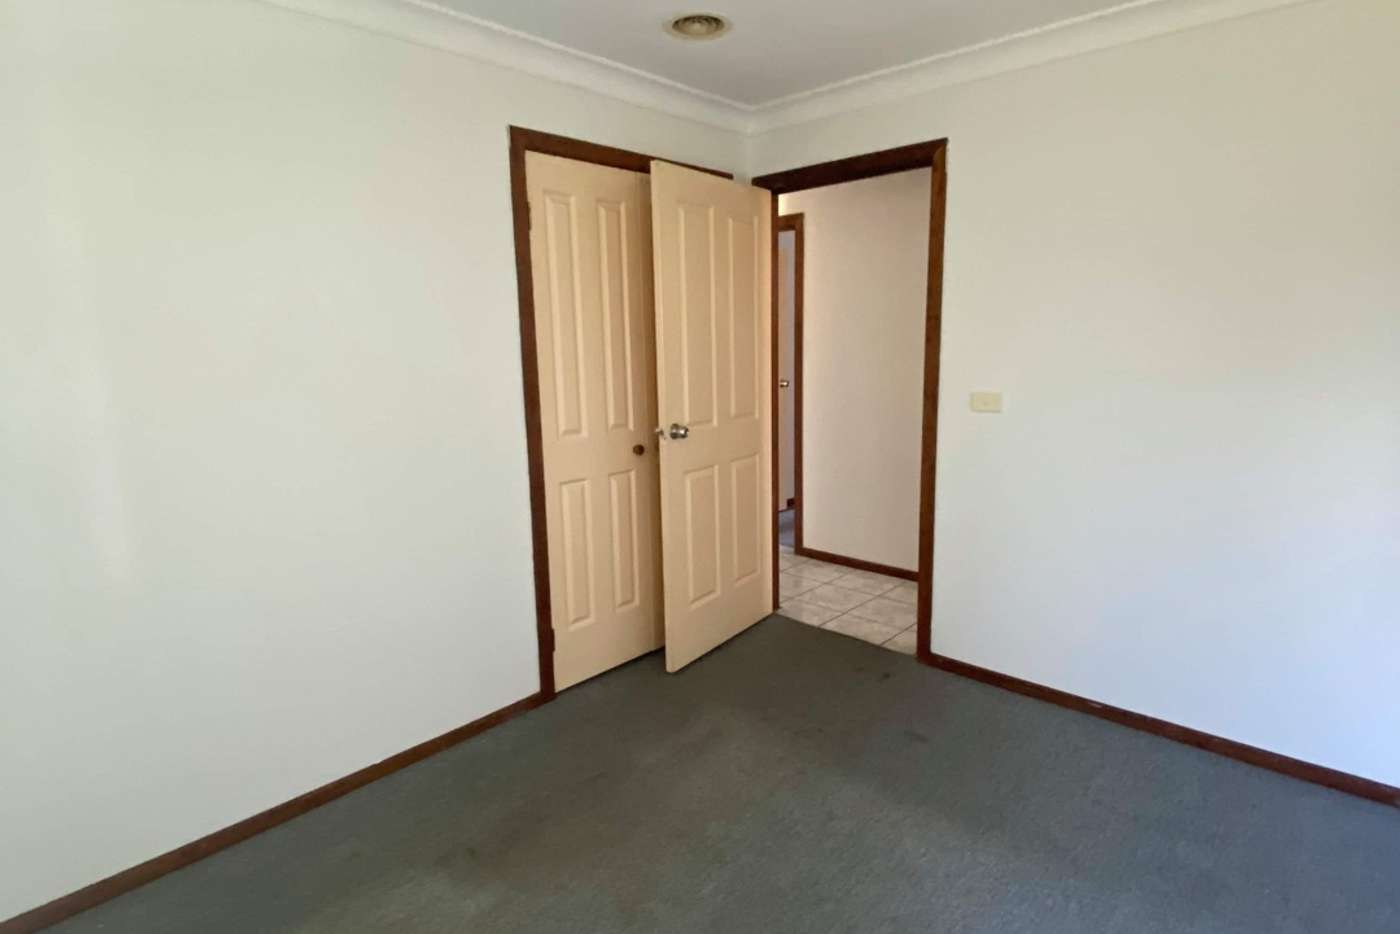 Sixth view of Homely house listing, 22 View Road, Springvale VIC 3171